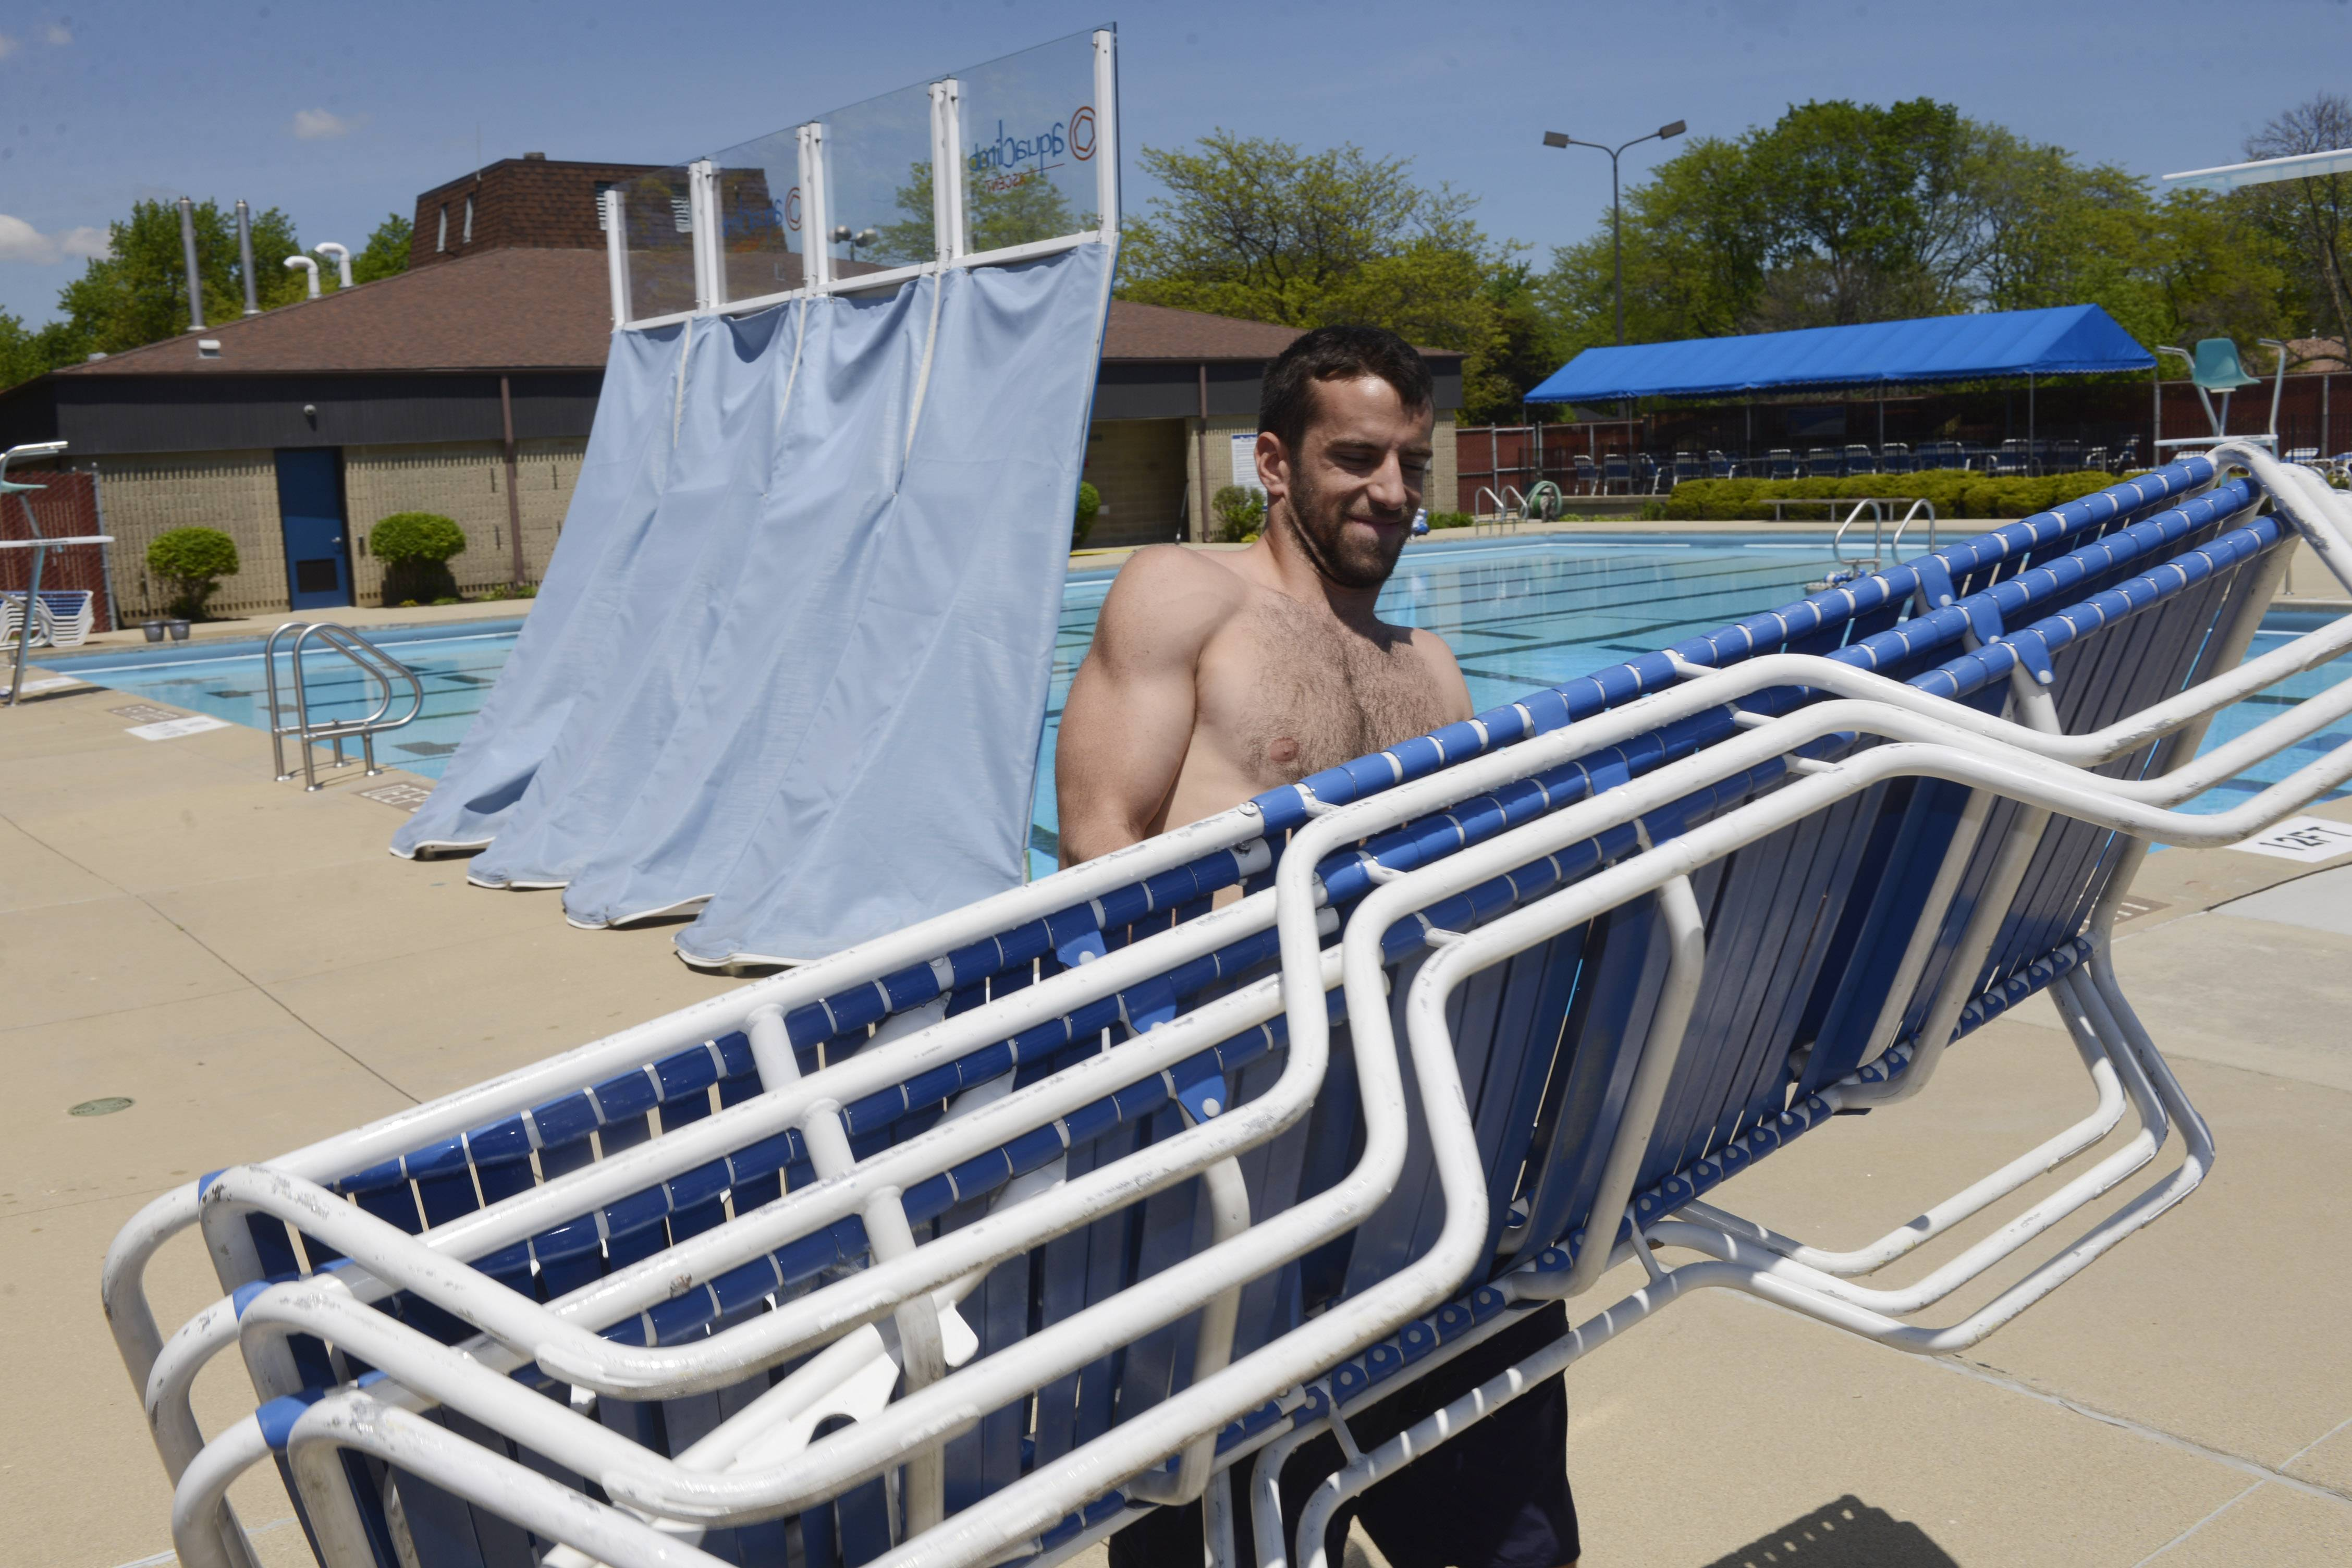 Lifeguard Daniel Serna-Geitz carries chairs to set up around the pool at the Schaumburg Park District's Bock Neighborhood Center and Park.